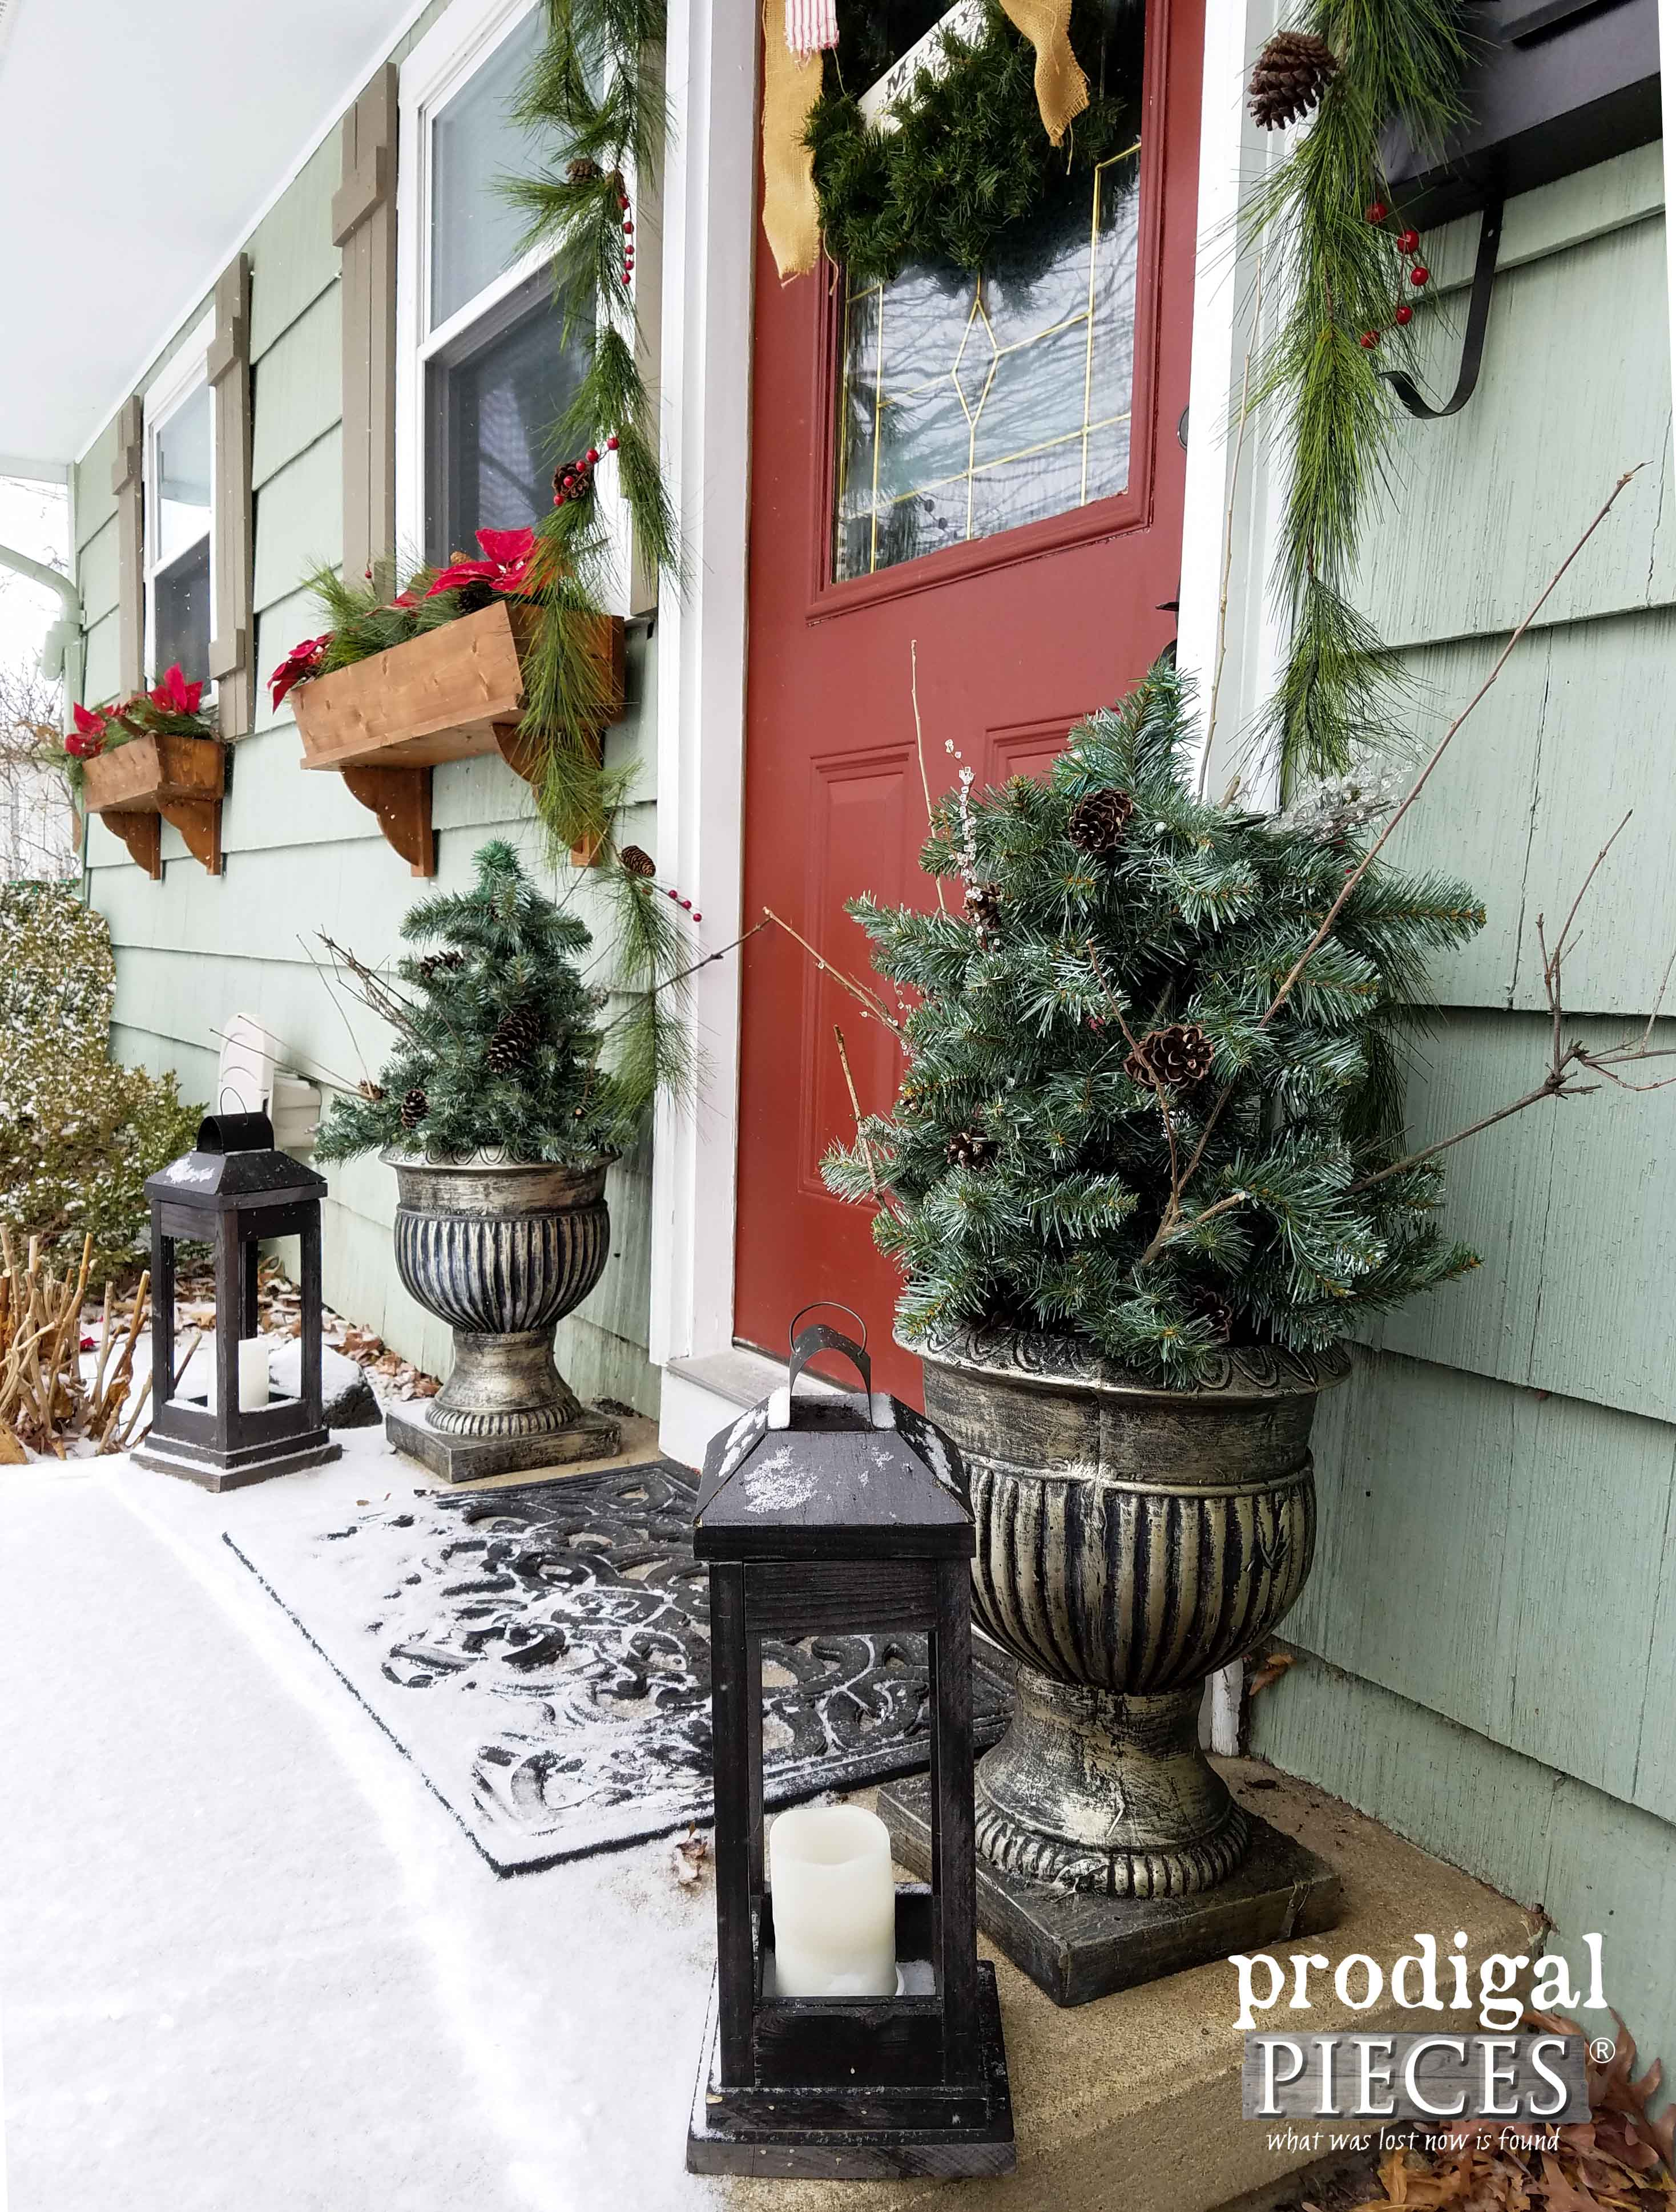 Give your Home Winter Appeal with these DIY Urns from Repurposed Materials by Prodigal Pieces | prodigalpieces.com